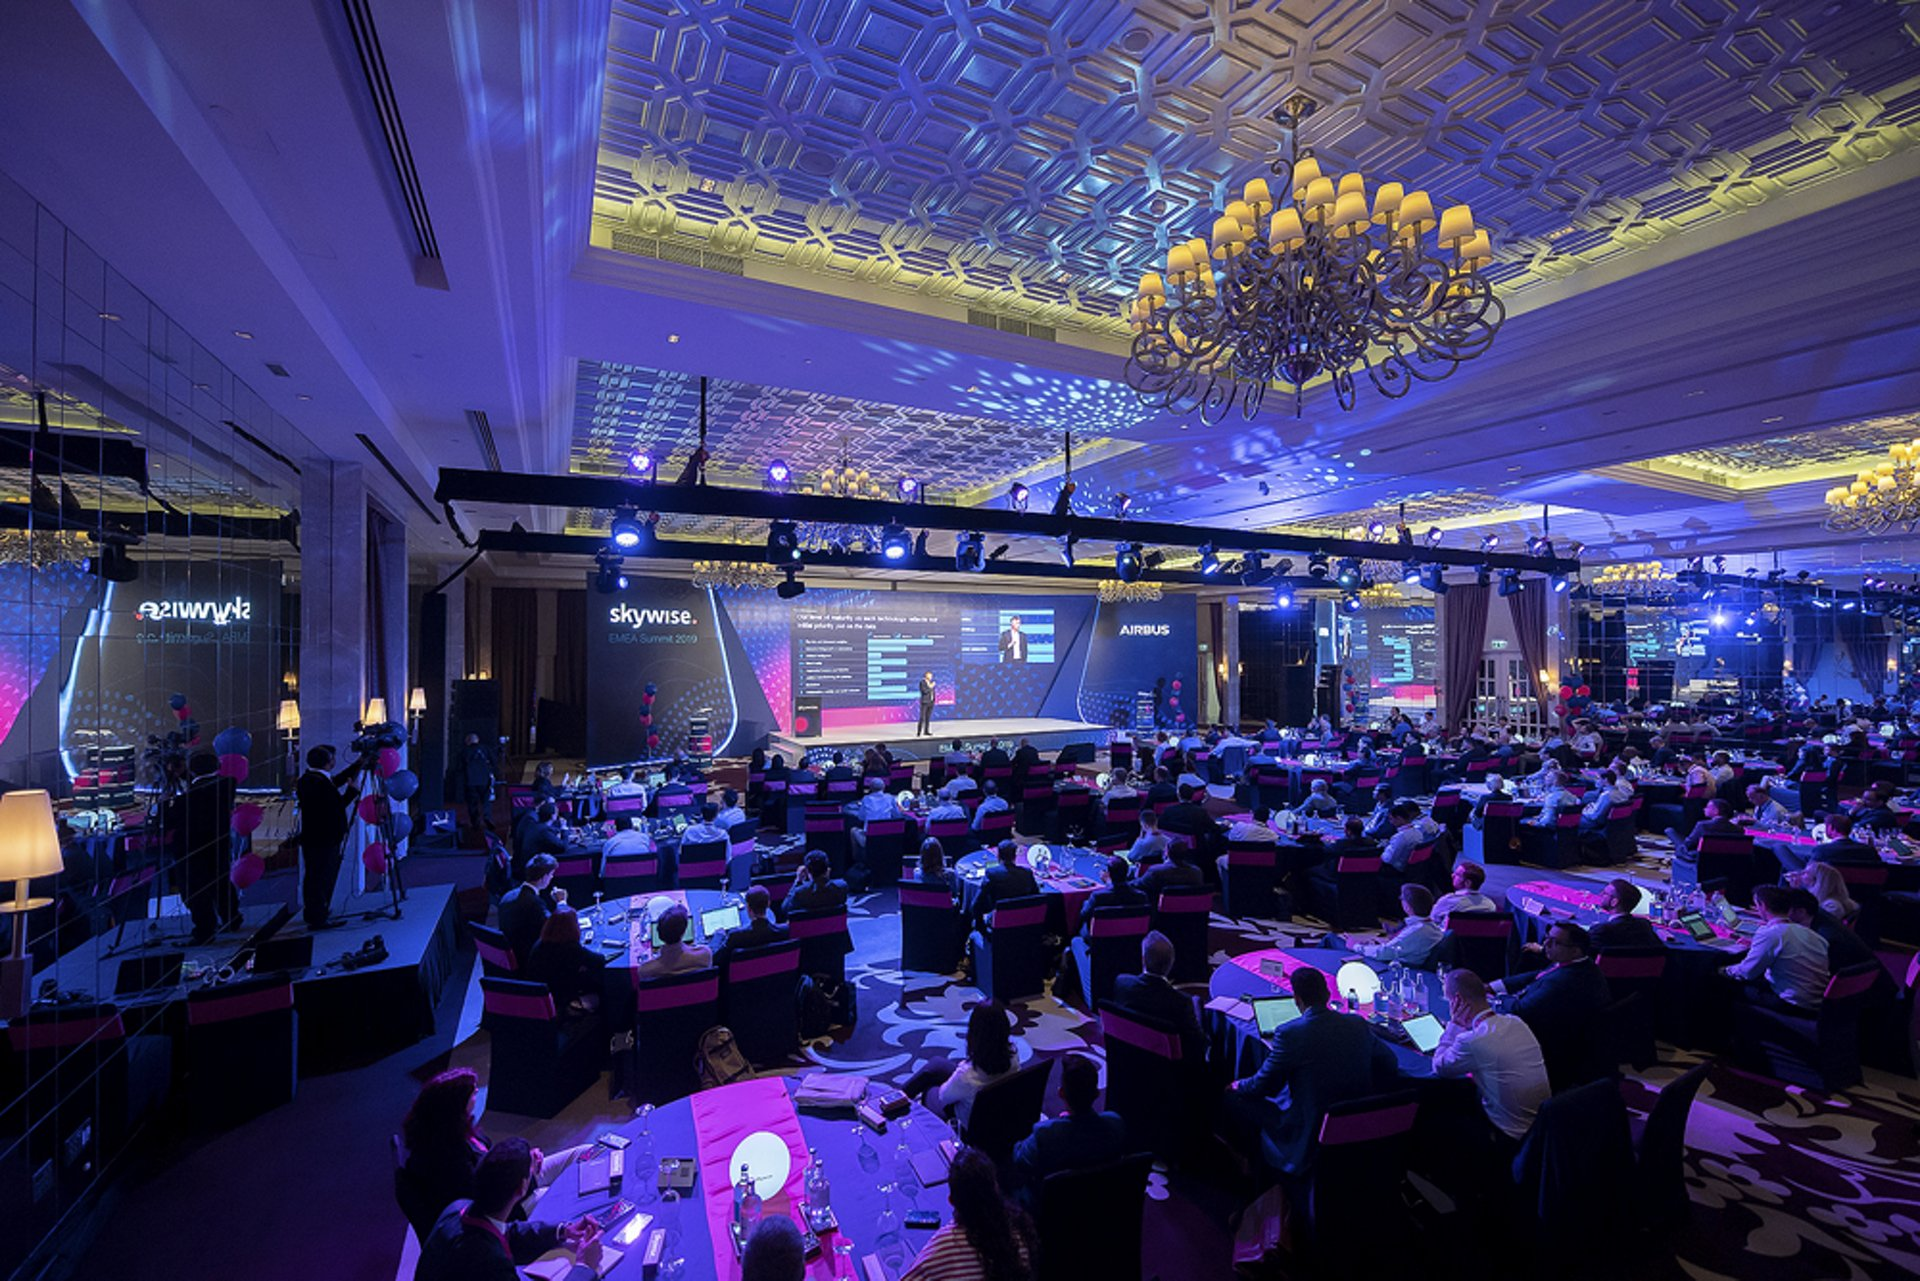 Skywise EMEA Summit Dubai - March 20-21, 2019